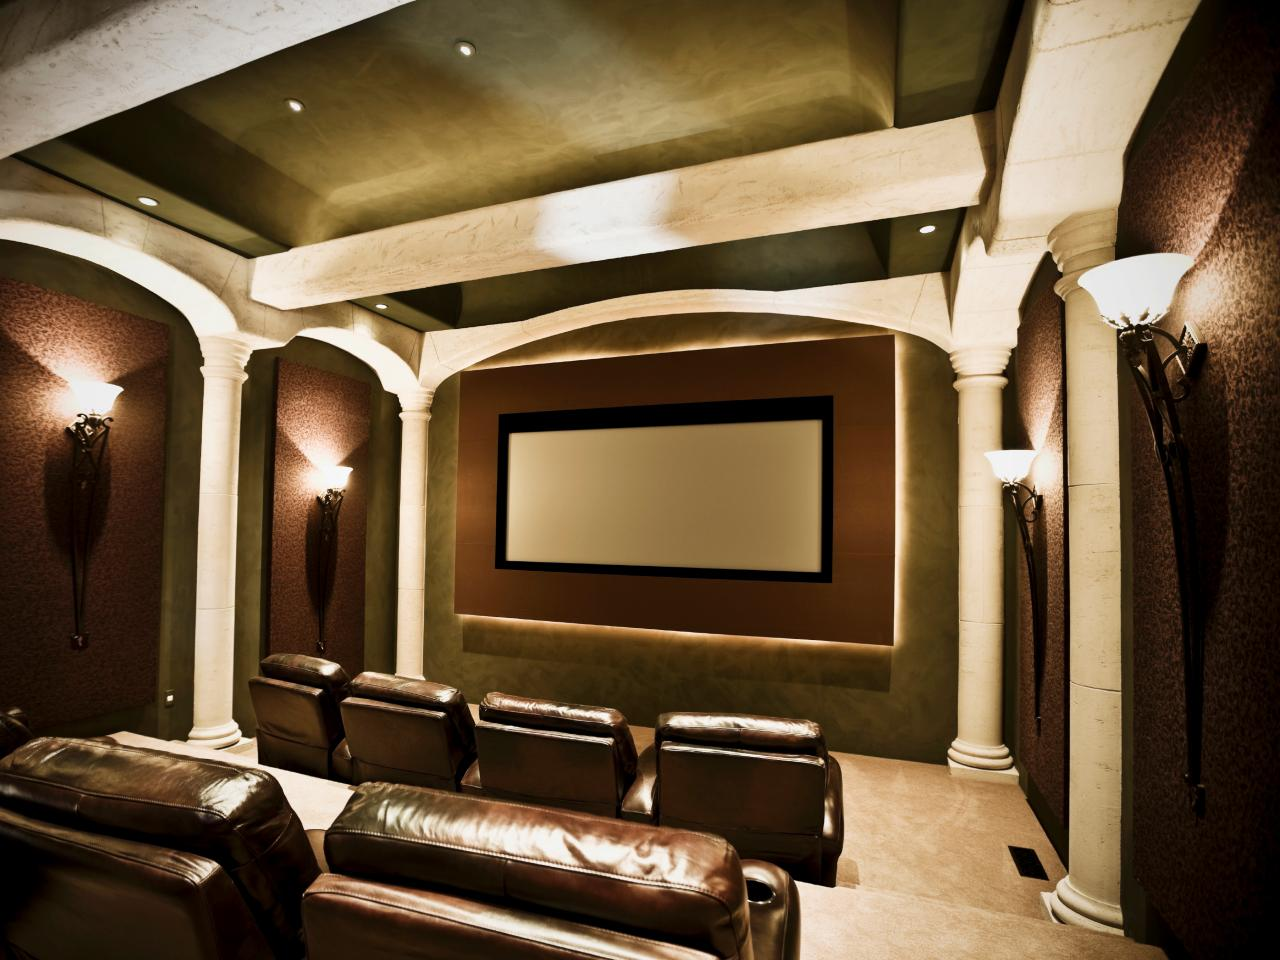 Gentil Clean Comfort. This Home Theater ...